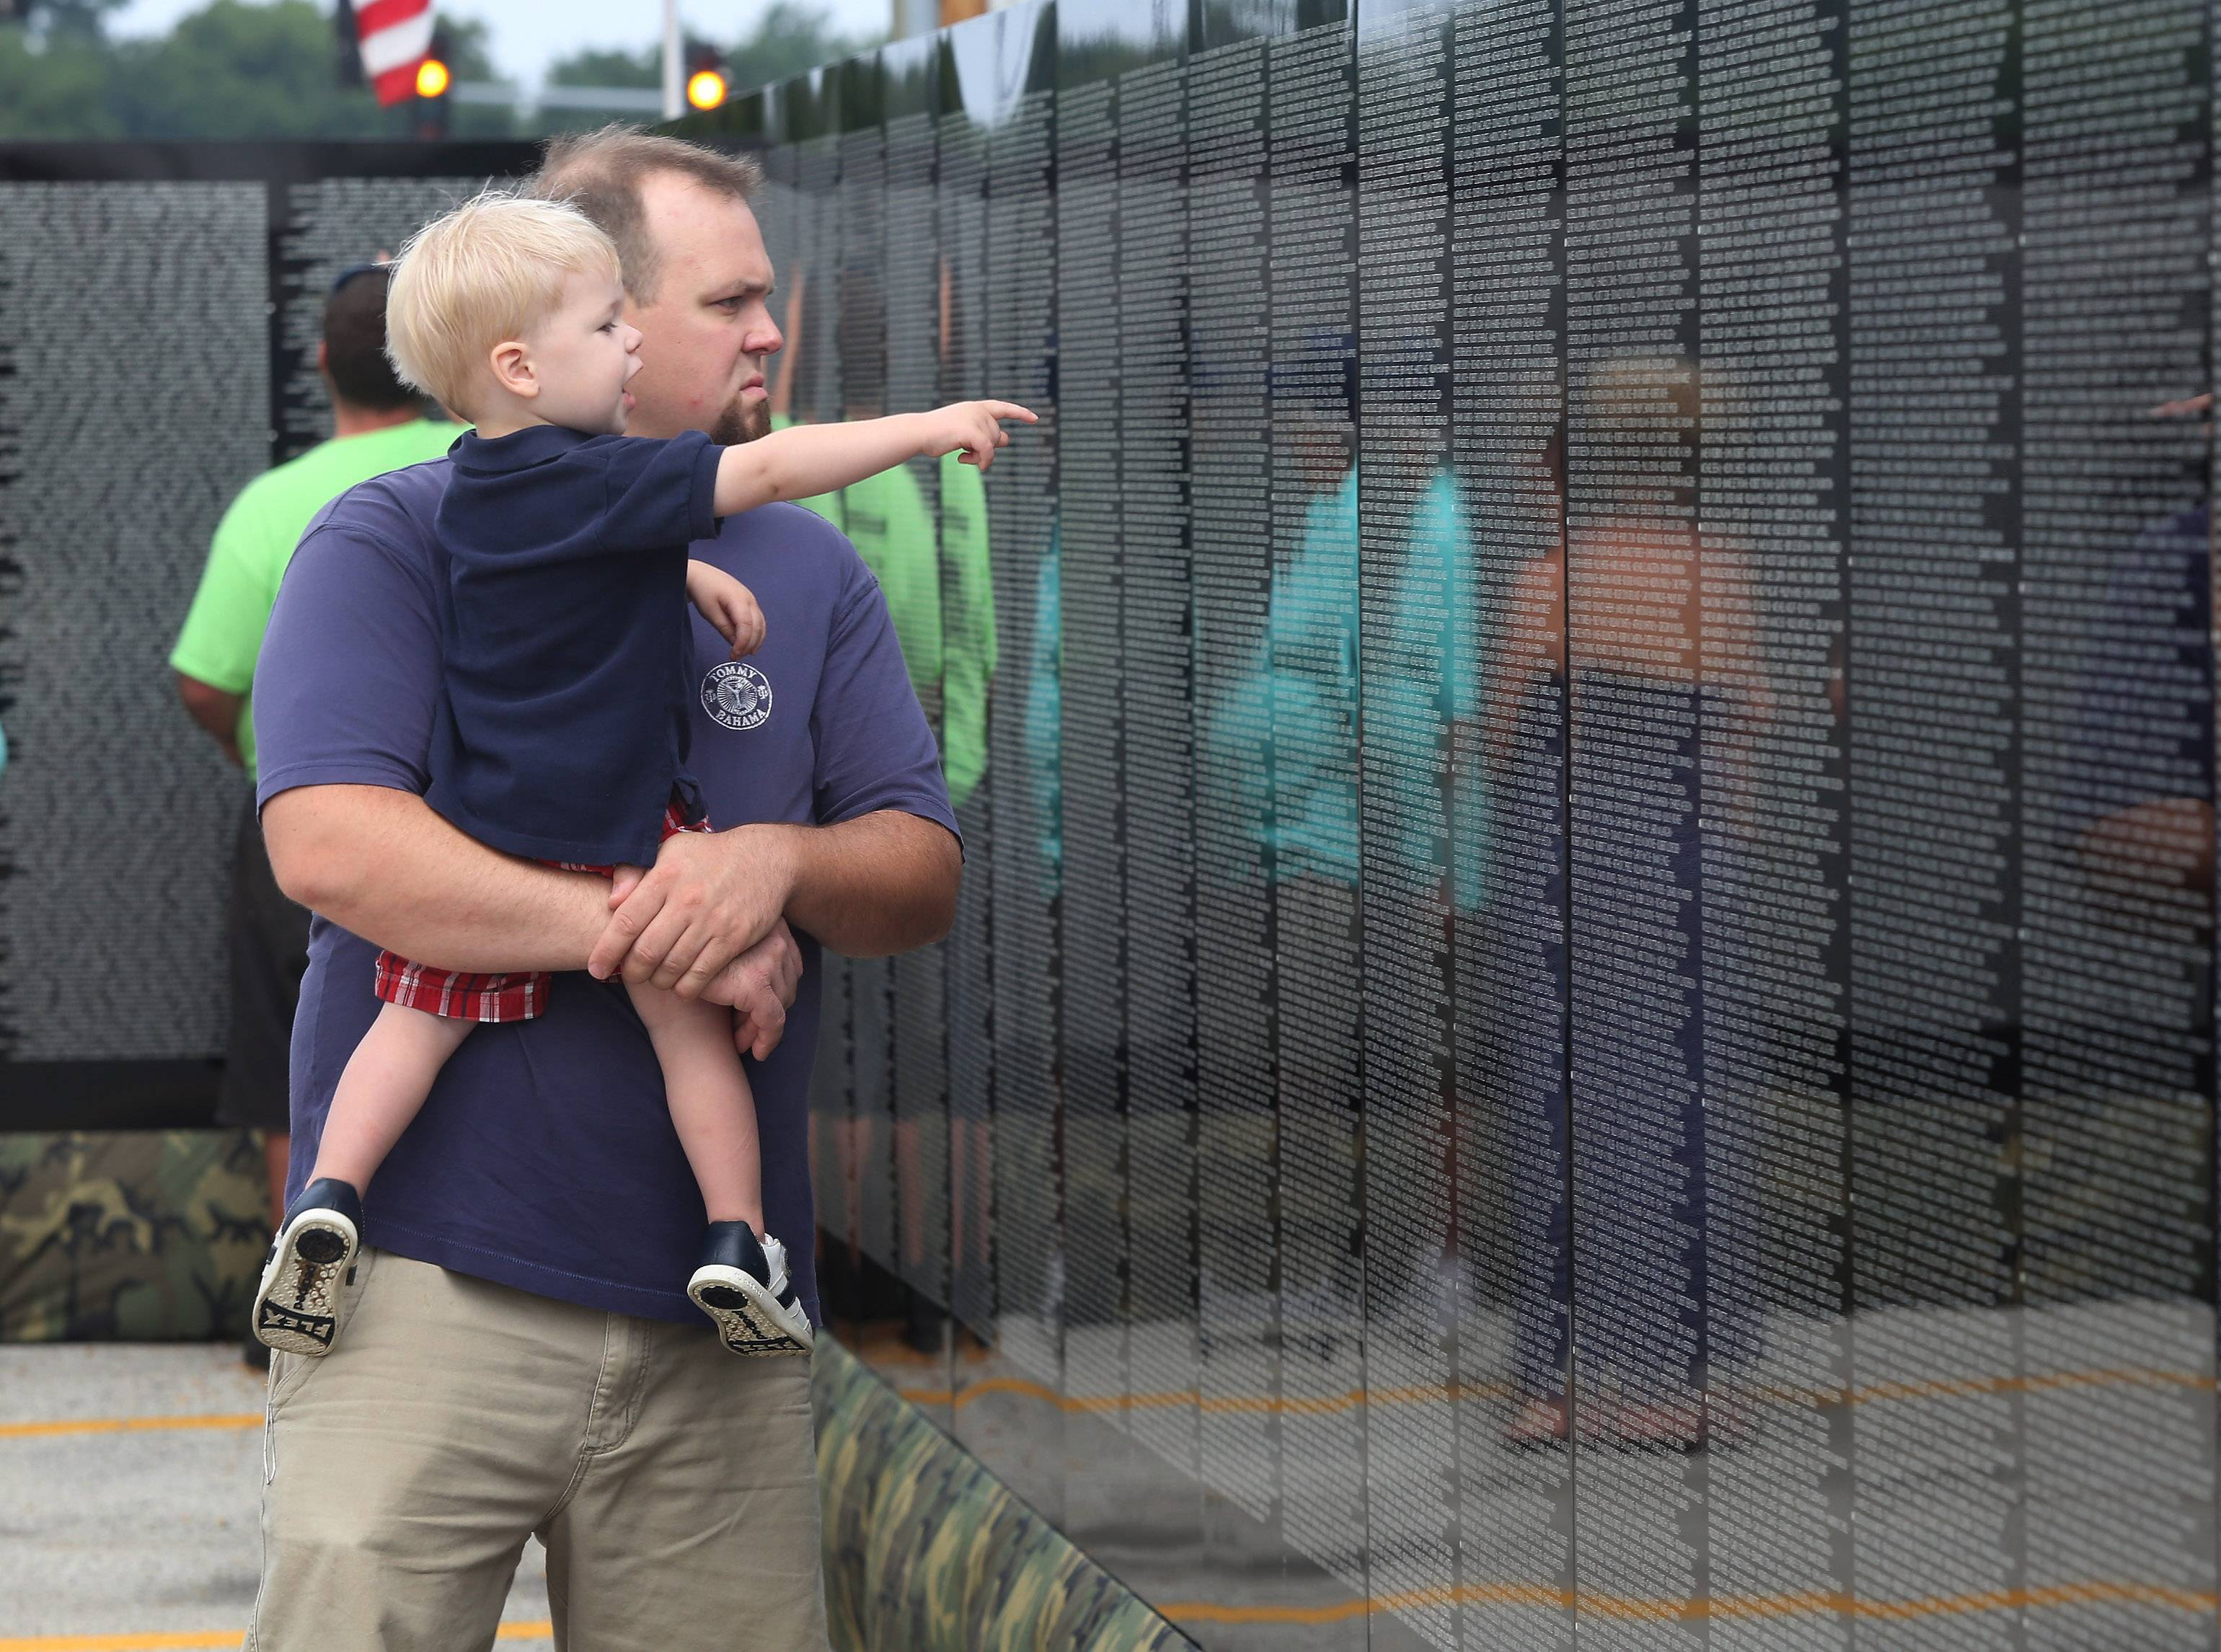 Lee Giernoth and son Andrew, 2, of Lake Villa view the Moving Wall replica Thursday at the parking lot of Home Depot in Round Lake Beach.